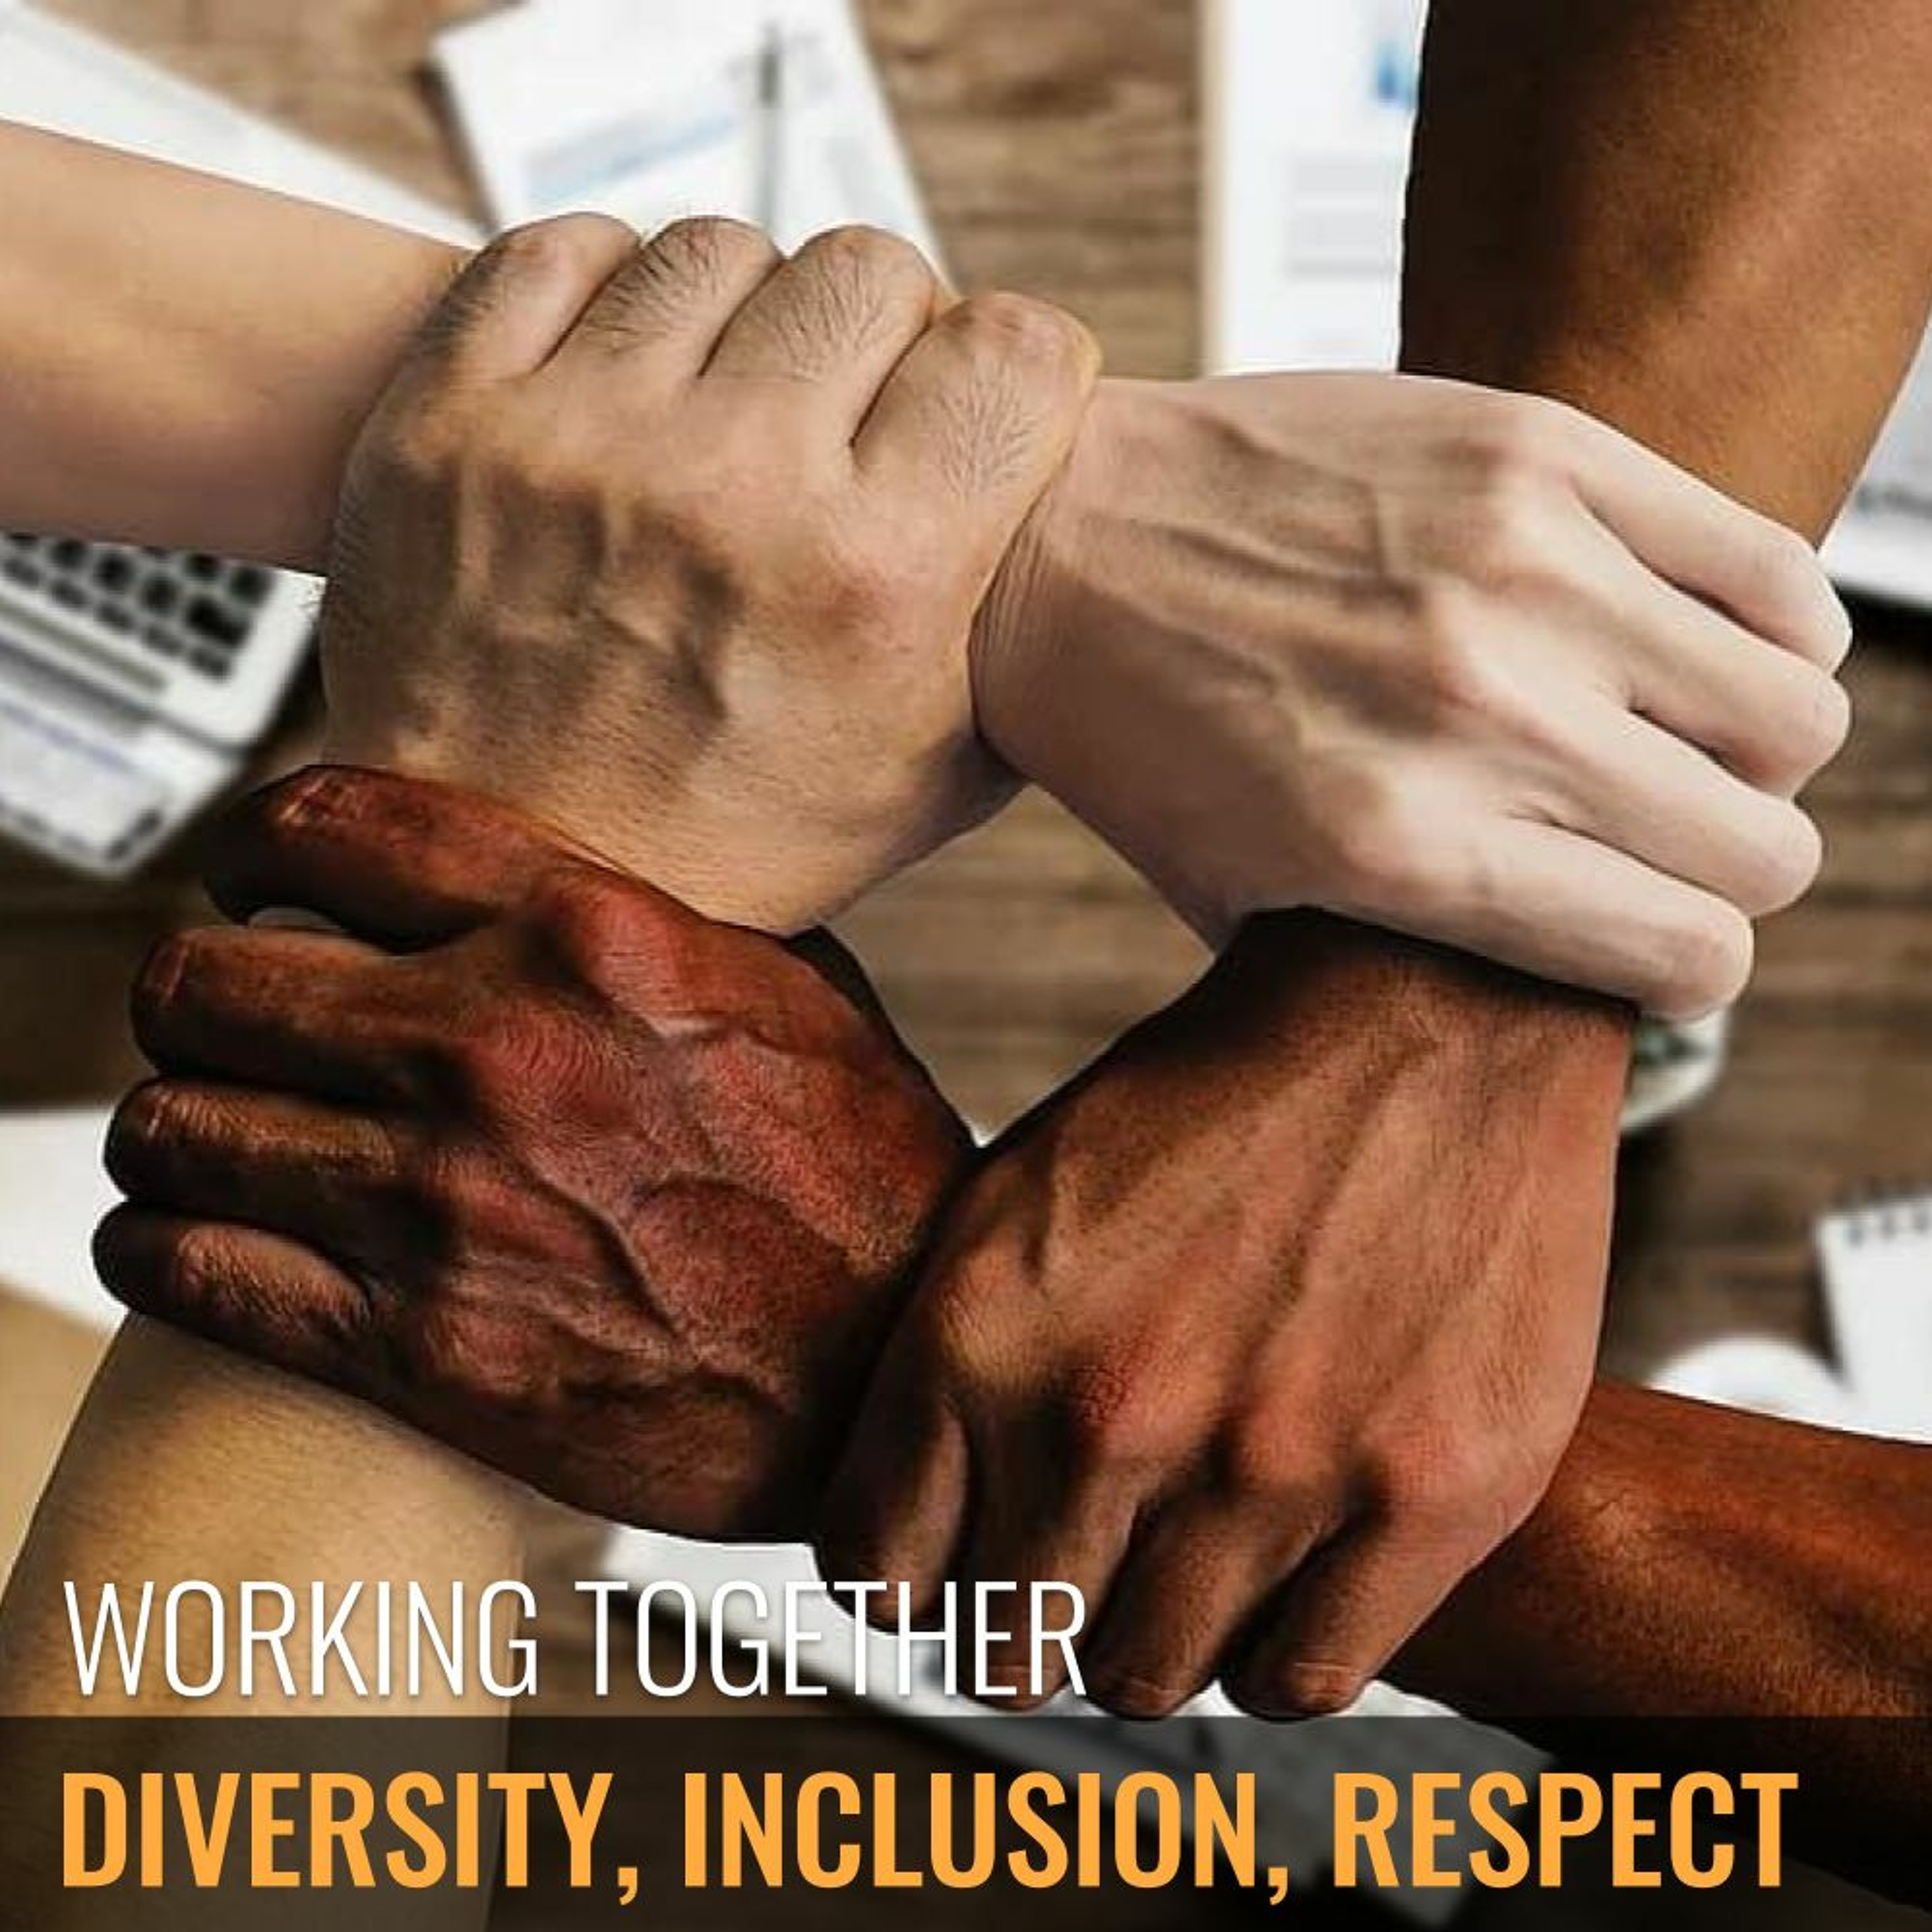 AIRWaves #46: Working Together - Diversity, Inclusion and Respect